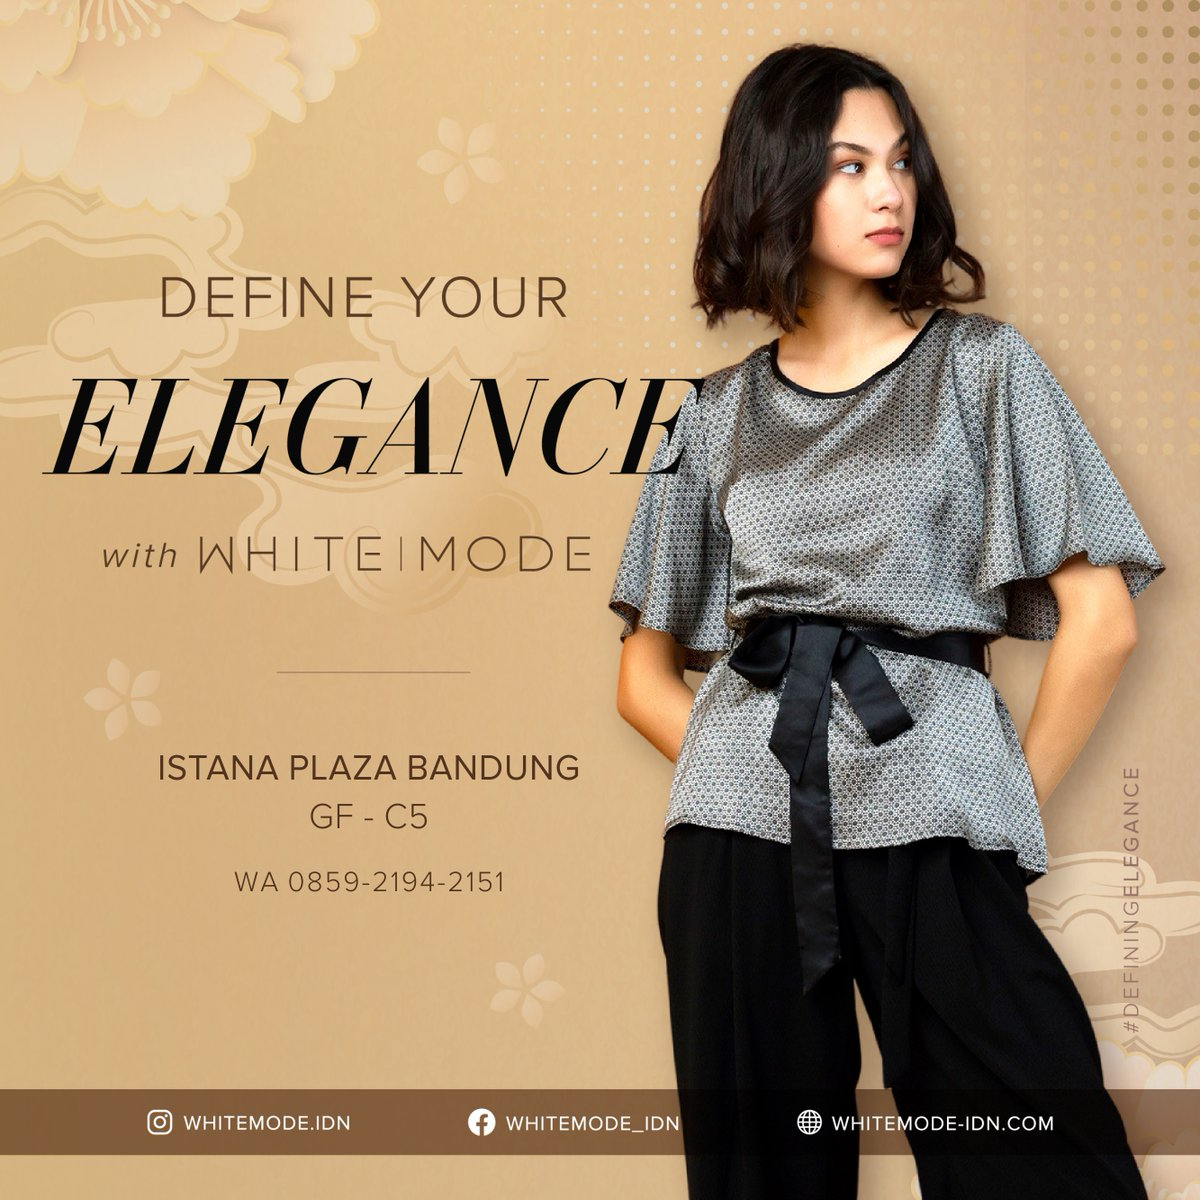 What you wear is how you present yourself to the world 🖤 Let's define your style with WHITE|MODE Visit our store and get yours, Ladies!  @whitemode.idn @whitemode.catalog  #definingelegance #elegantstyle #whitemode #fashion